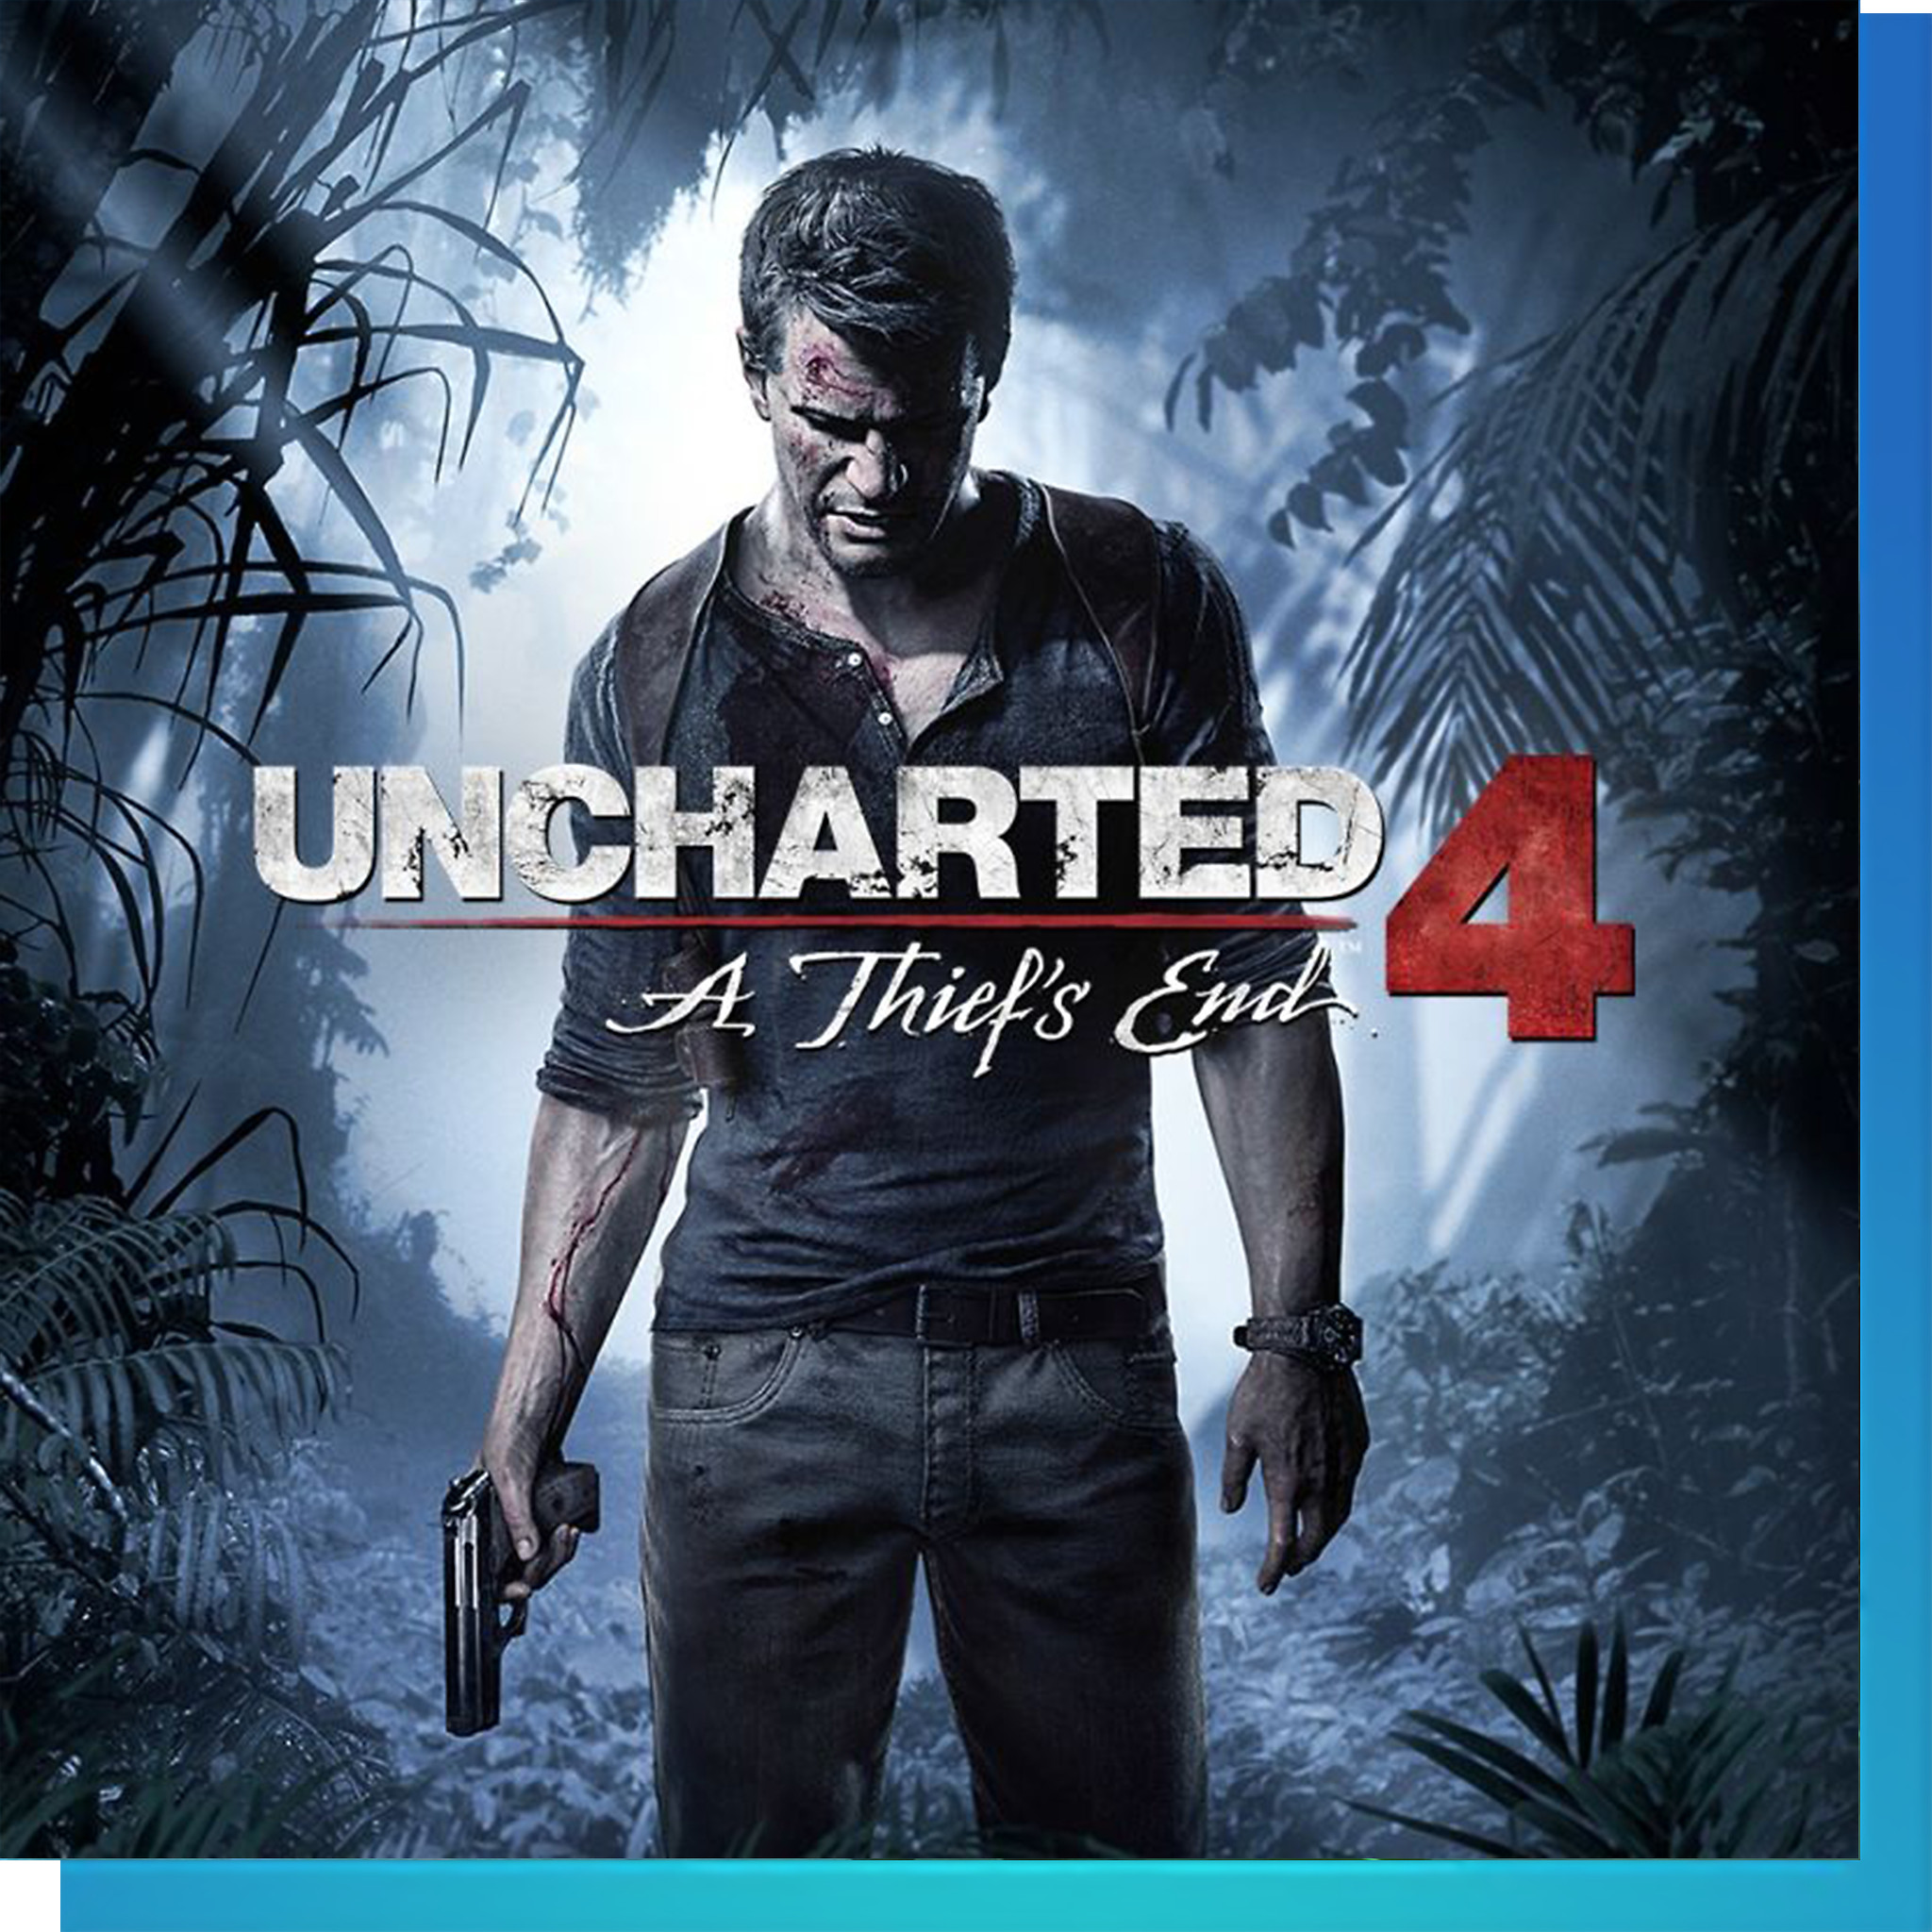 Uncharted 4: A Thief's End - Now Available with PS Now